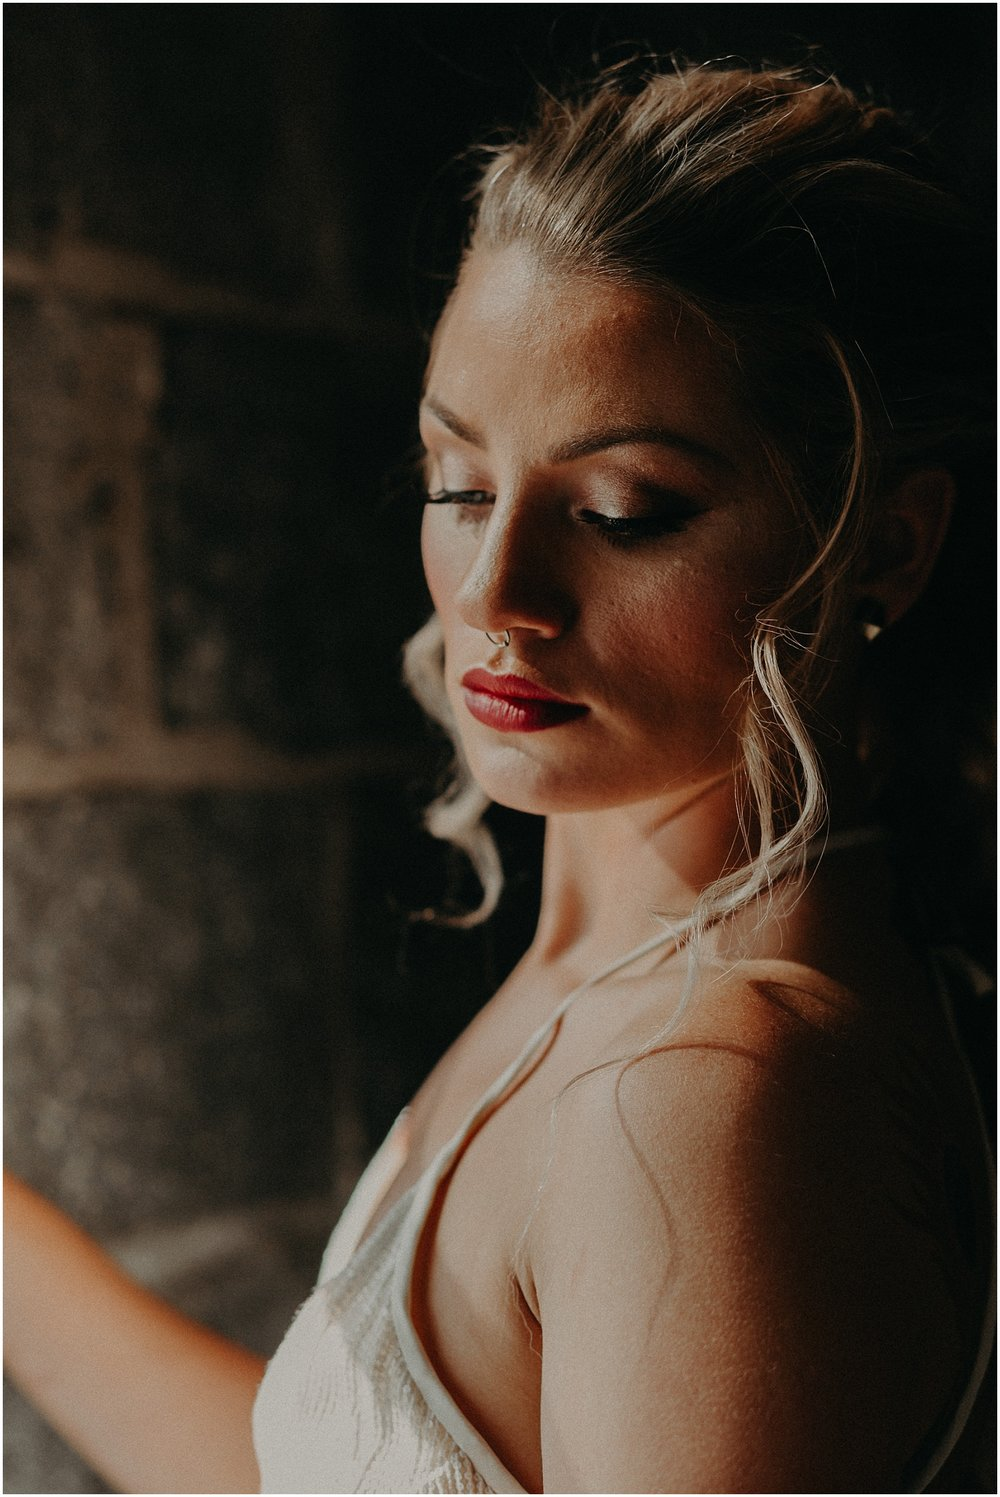 styled shoot-bridal portraits-portraits-bride-rock and roll-industrial-urban-wedding-inspiration-nj-new jersey-nyc-new york city-art-diy wedding_0086.jpg